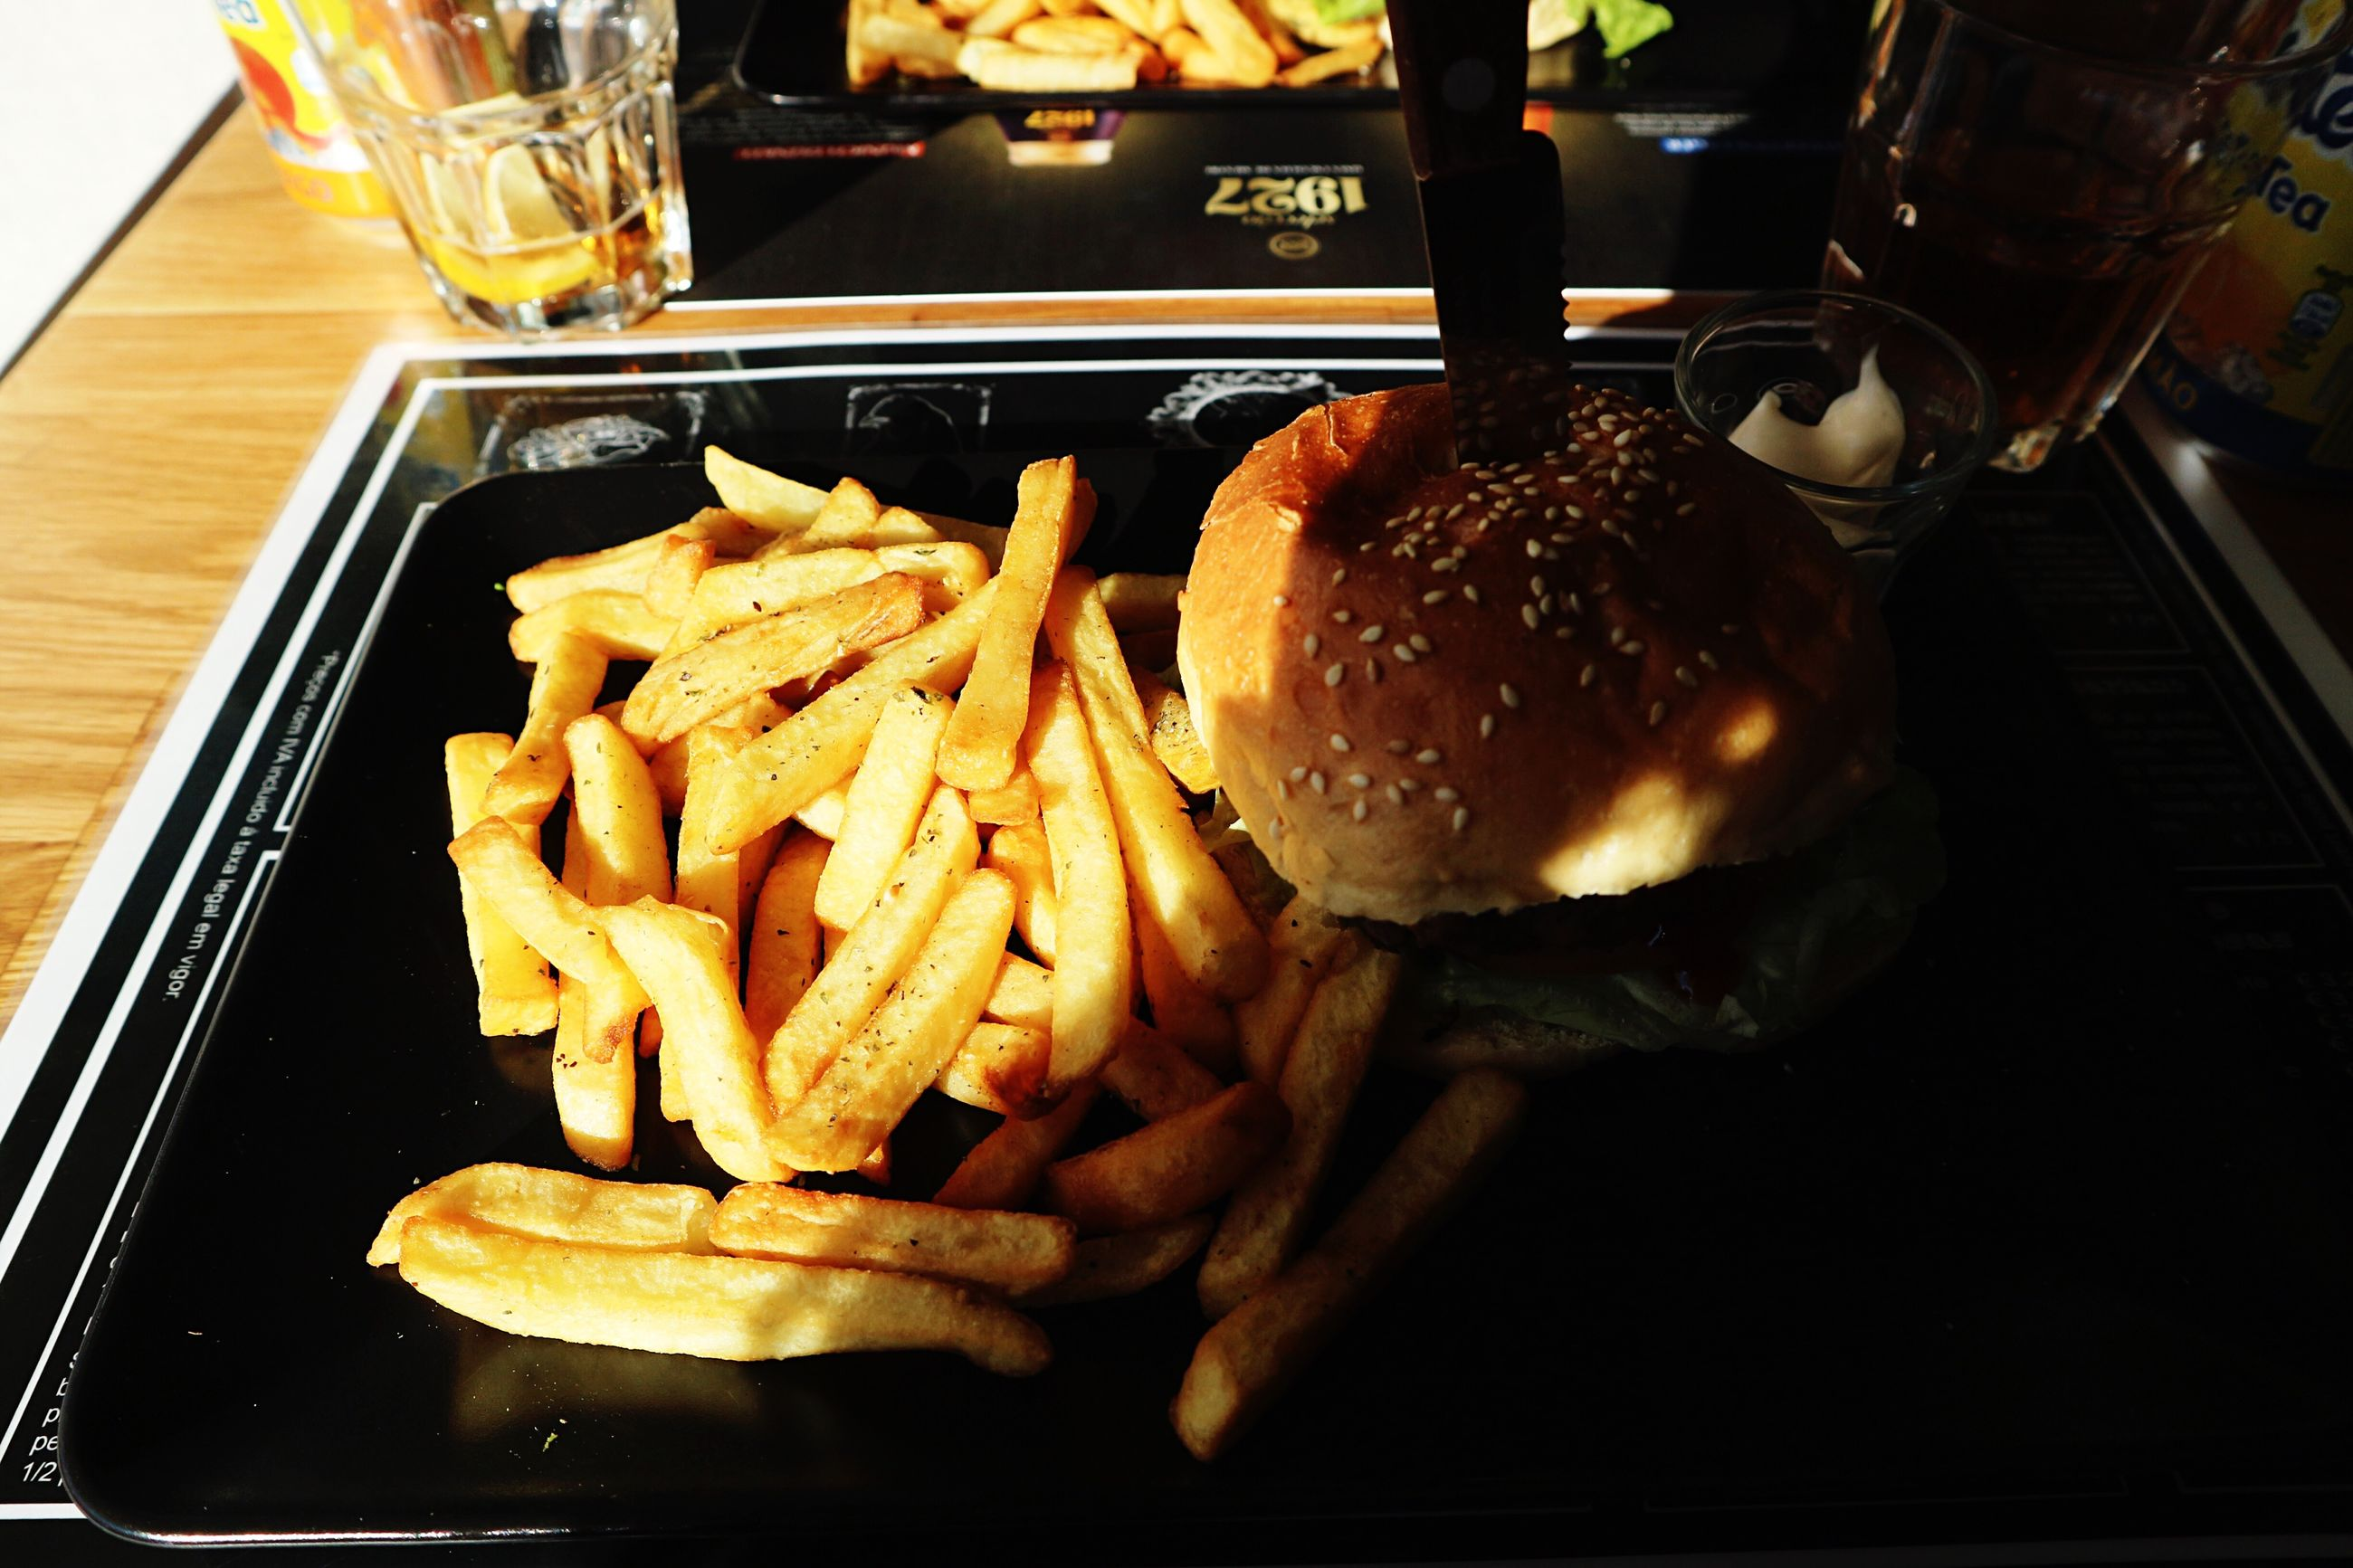 unhealthy eating, fast food, food, freshness, ready-to-eat, french fries, food and drink, prepared potato, snack, indulgence, deep fried, no people, indoors, close-up, day